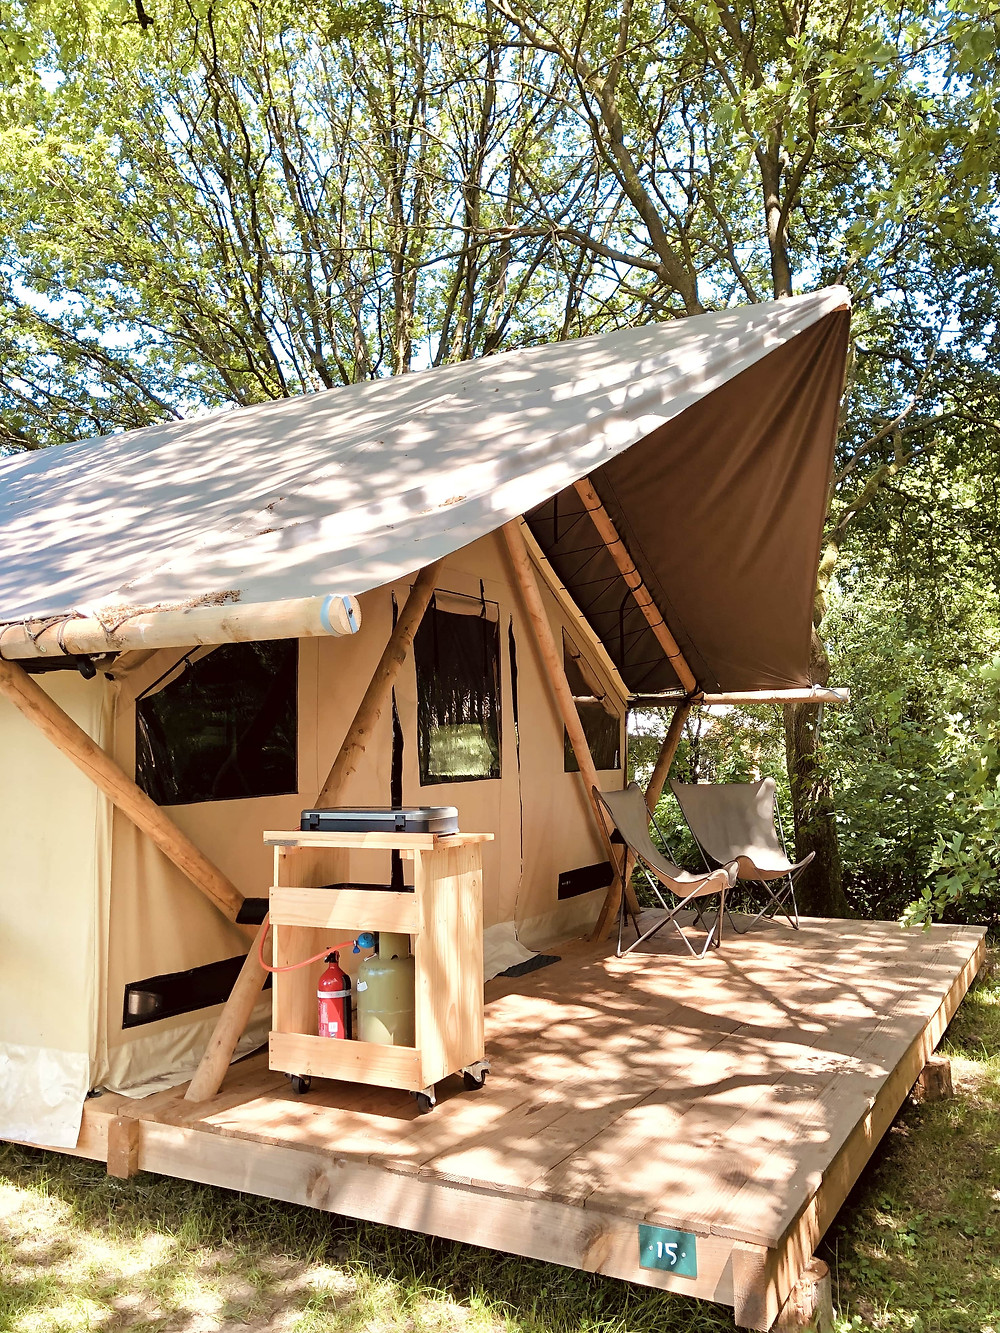 Huttopia Trappeur glamping tent Beerze - the Netherlands